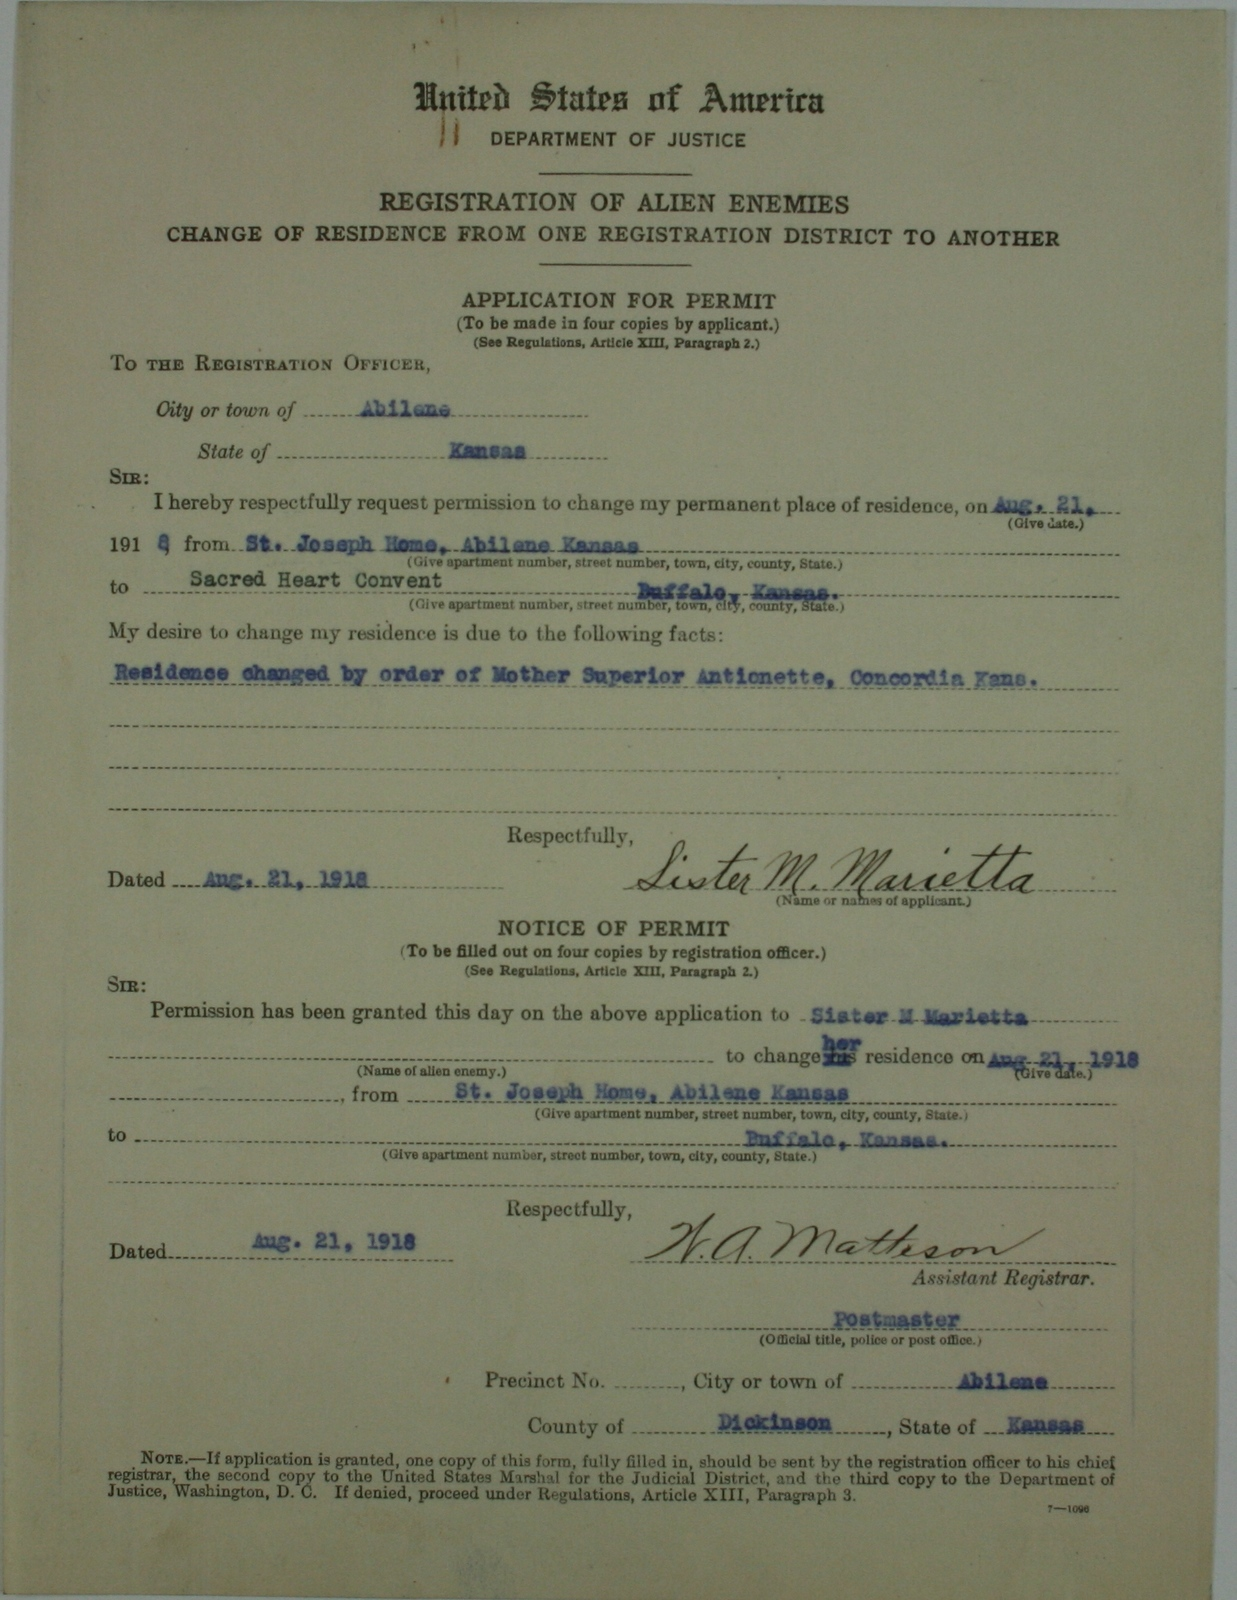 Alien Application Permit for Sister M  Marietta | U S  National Archives